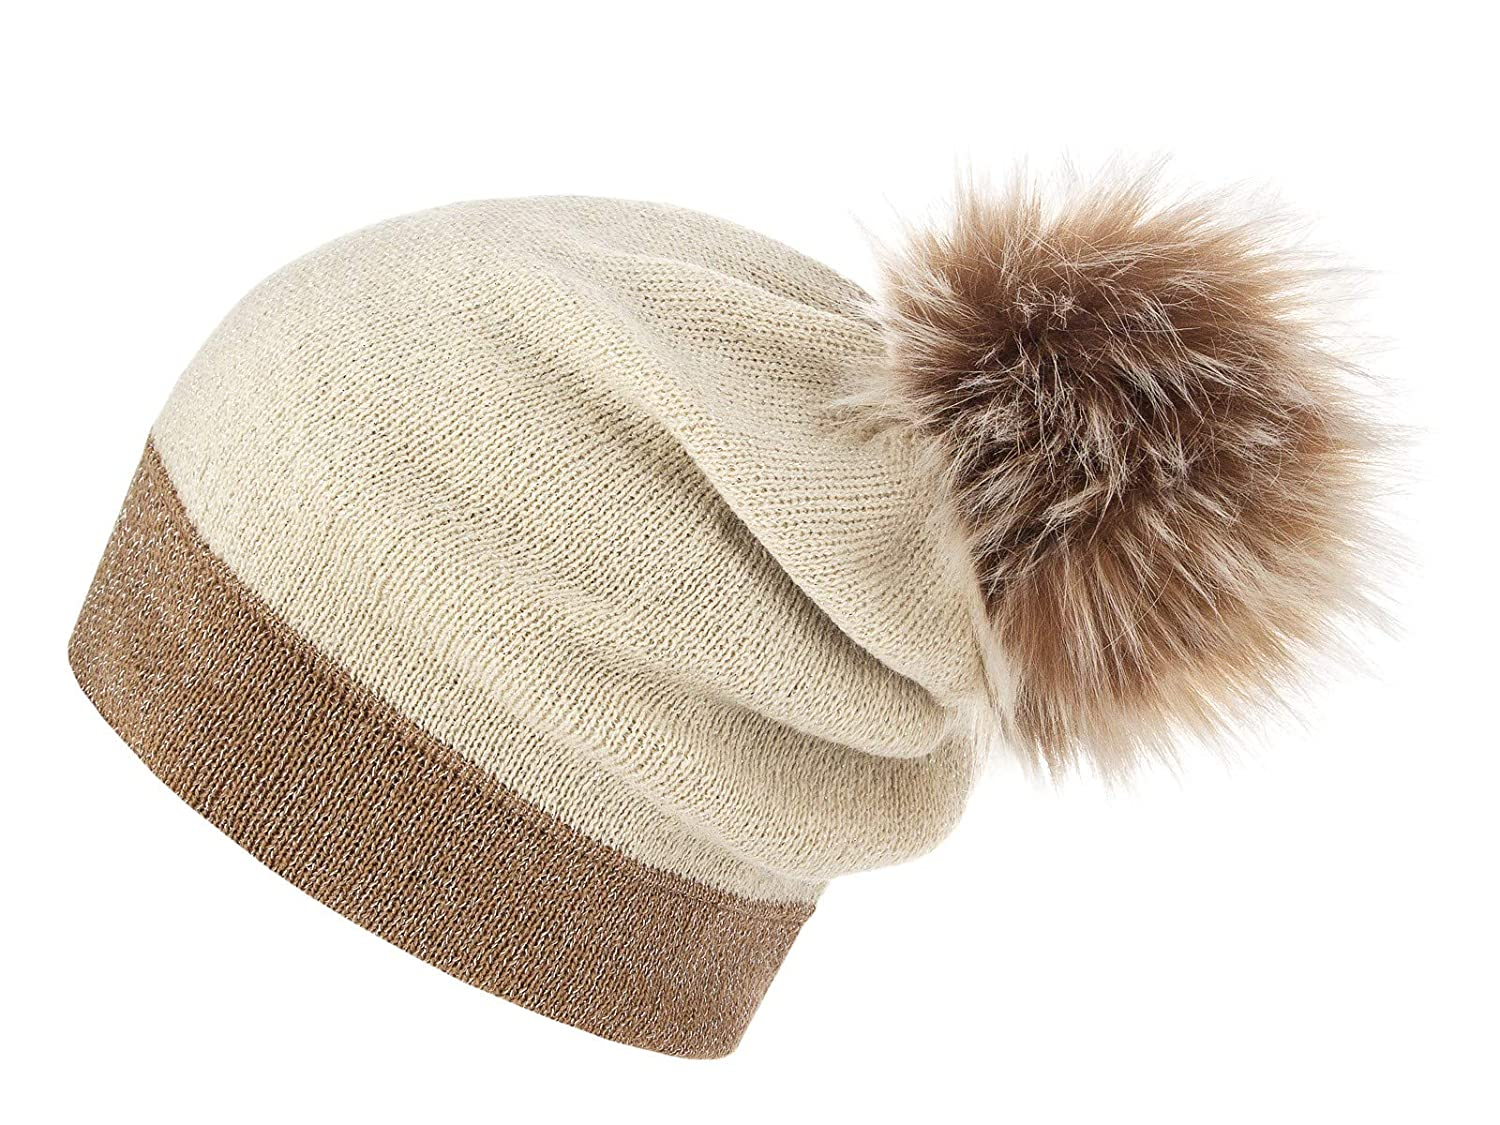 Beige Ecru Brown with White Futrzane Women's Slouchy Beanie Hat with a Faux Fur Pom Pom